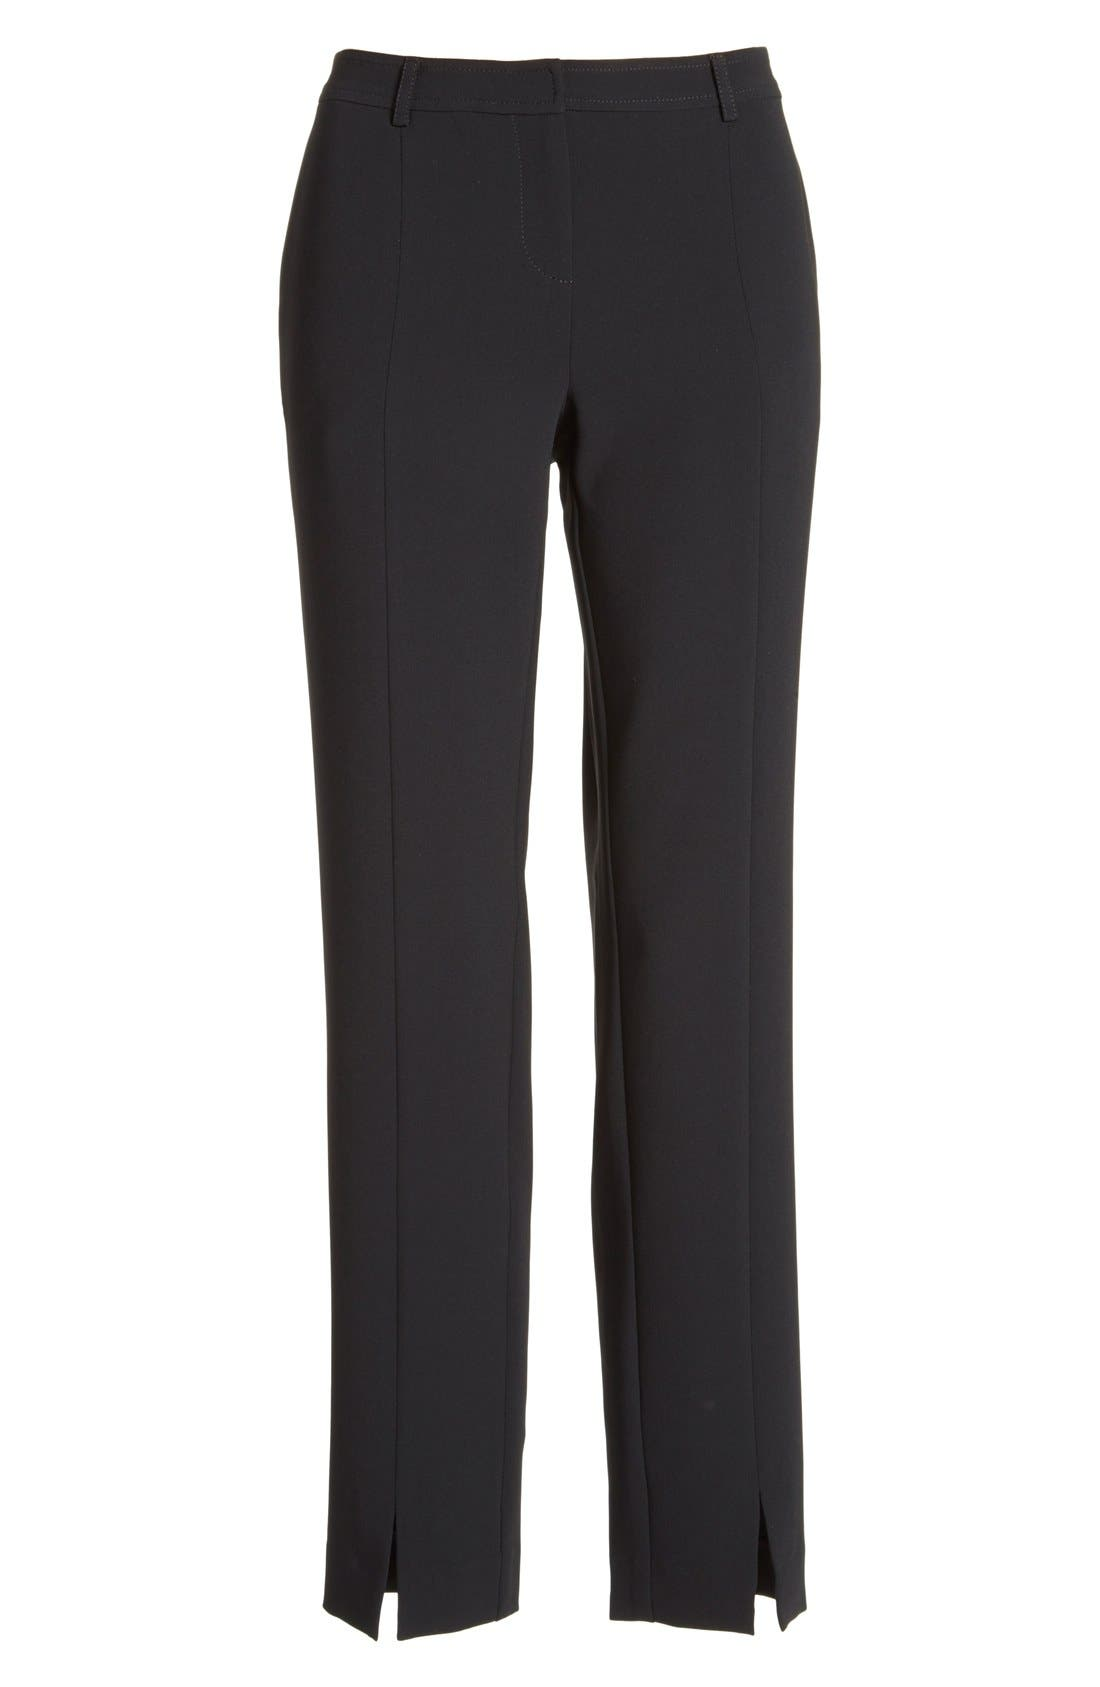 'Jennifer' Crepe Marocain Ankle Pants,                             Alternate thumbnail 6, color,                             CAVIAR